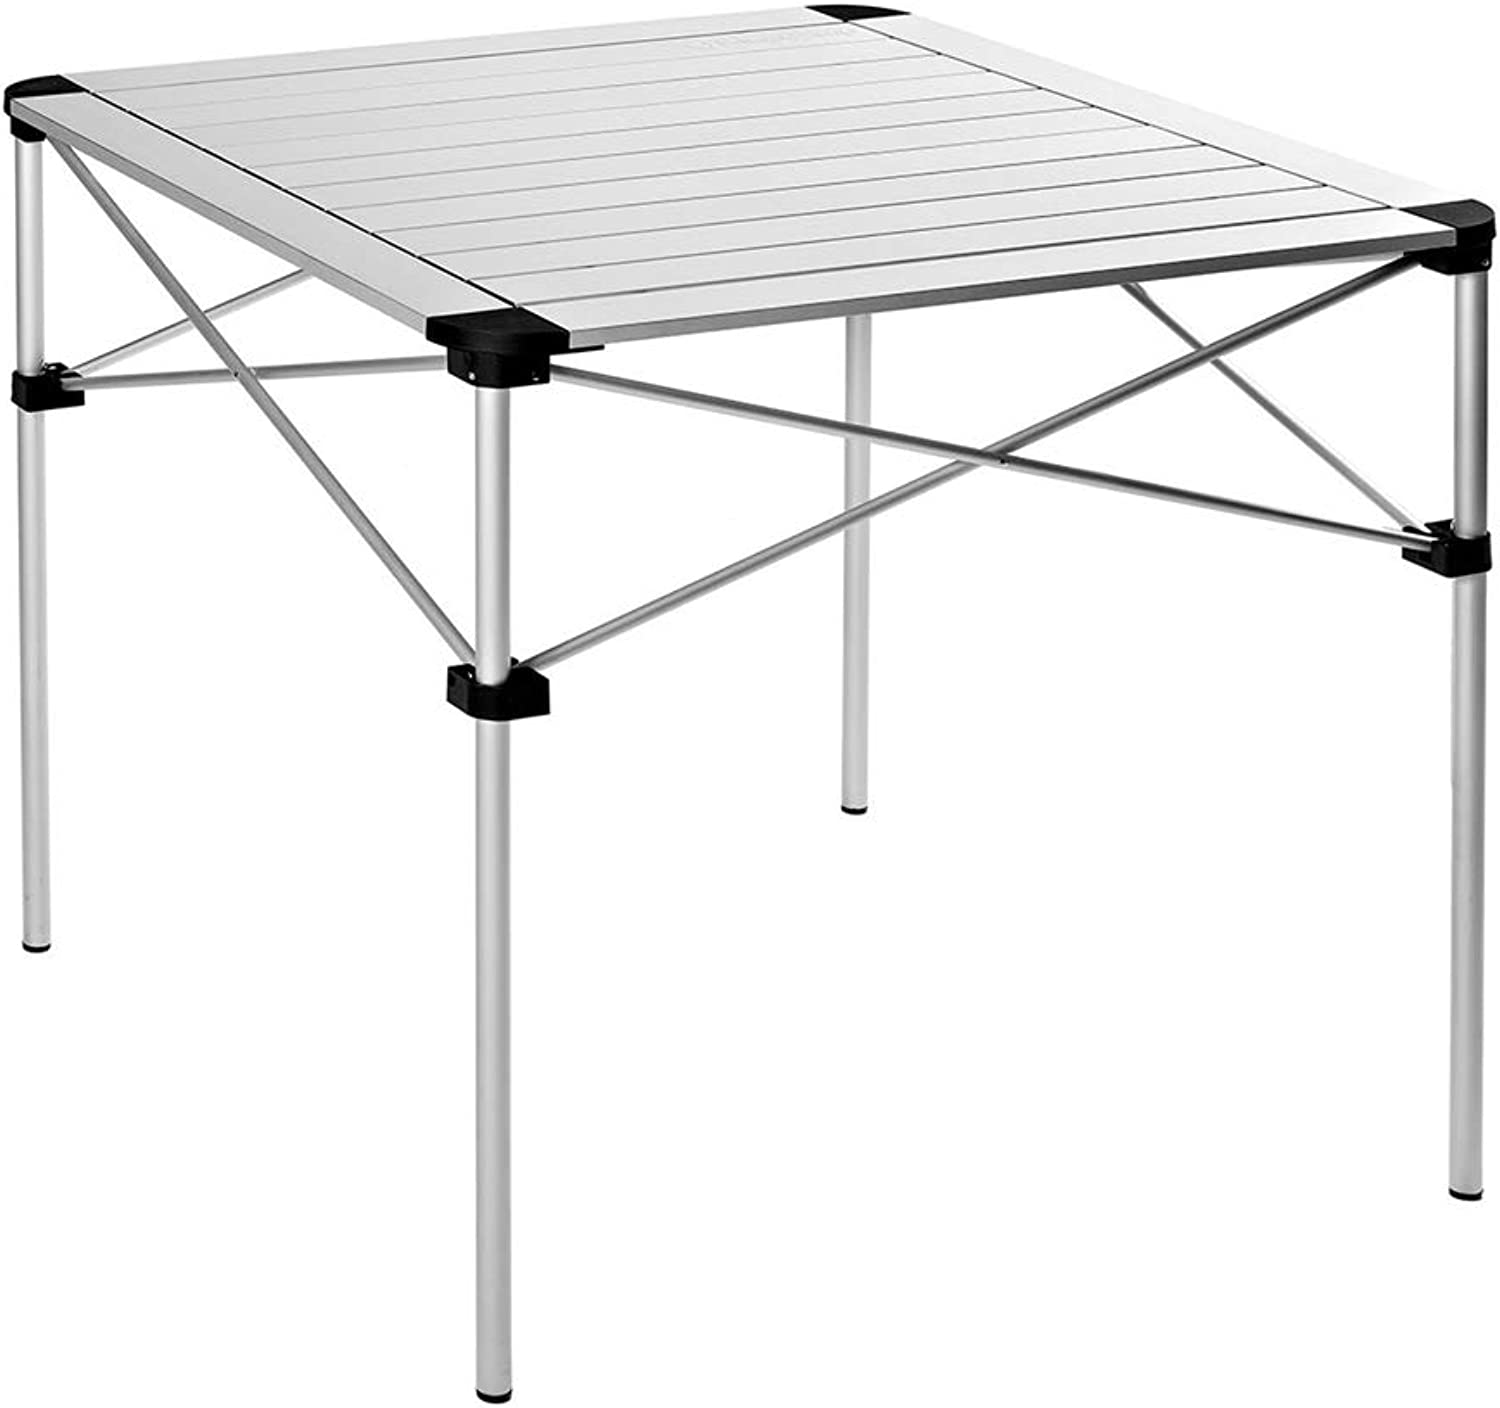 Collapsible Camp Table Aluminum Lightweight Roll Up Top Table with Bag 4 People Stable Compact Portable Easy Transport for Camping Outdoor Picnic Beach BBQ